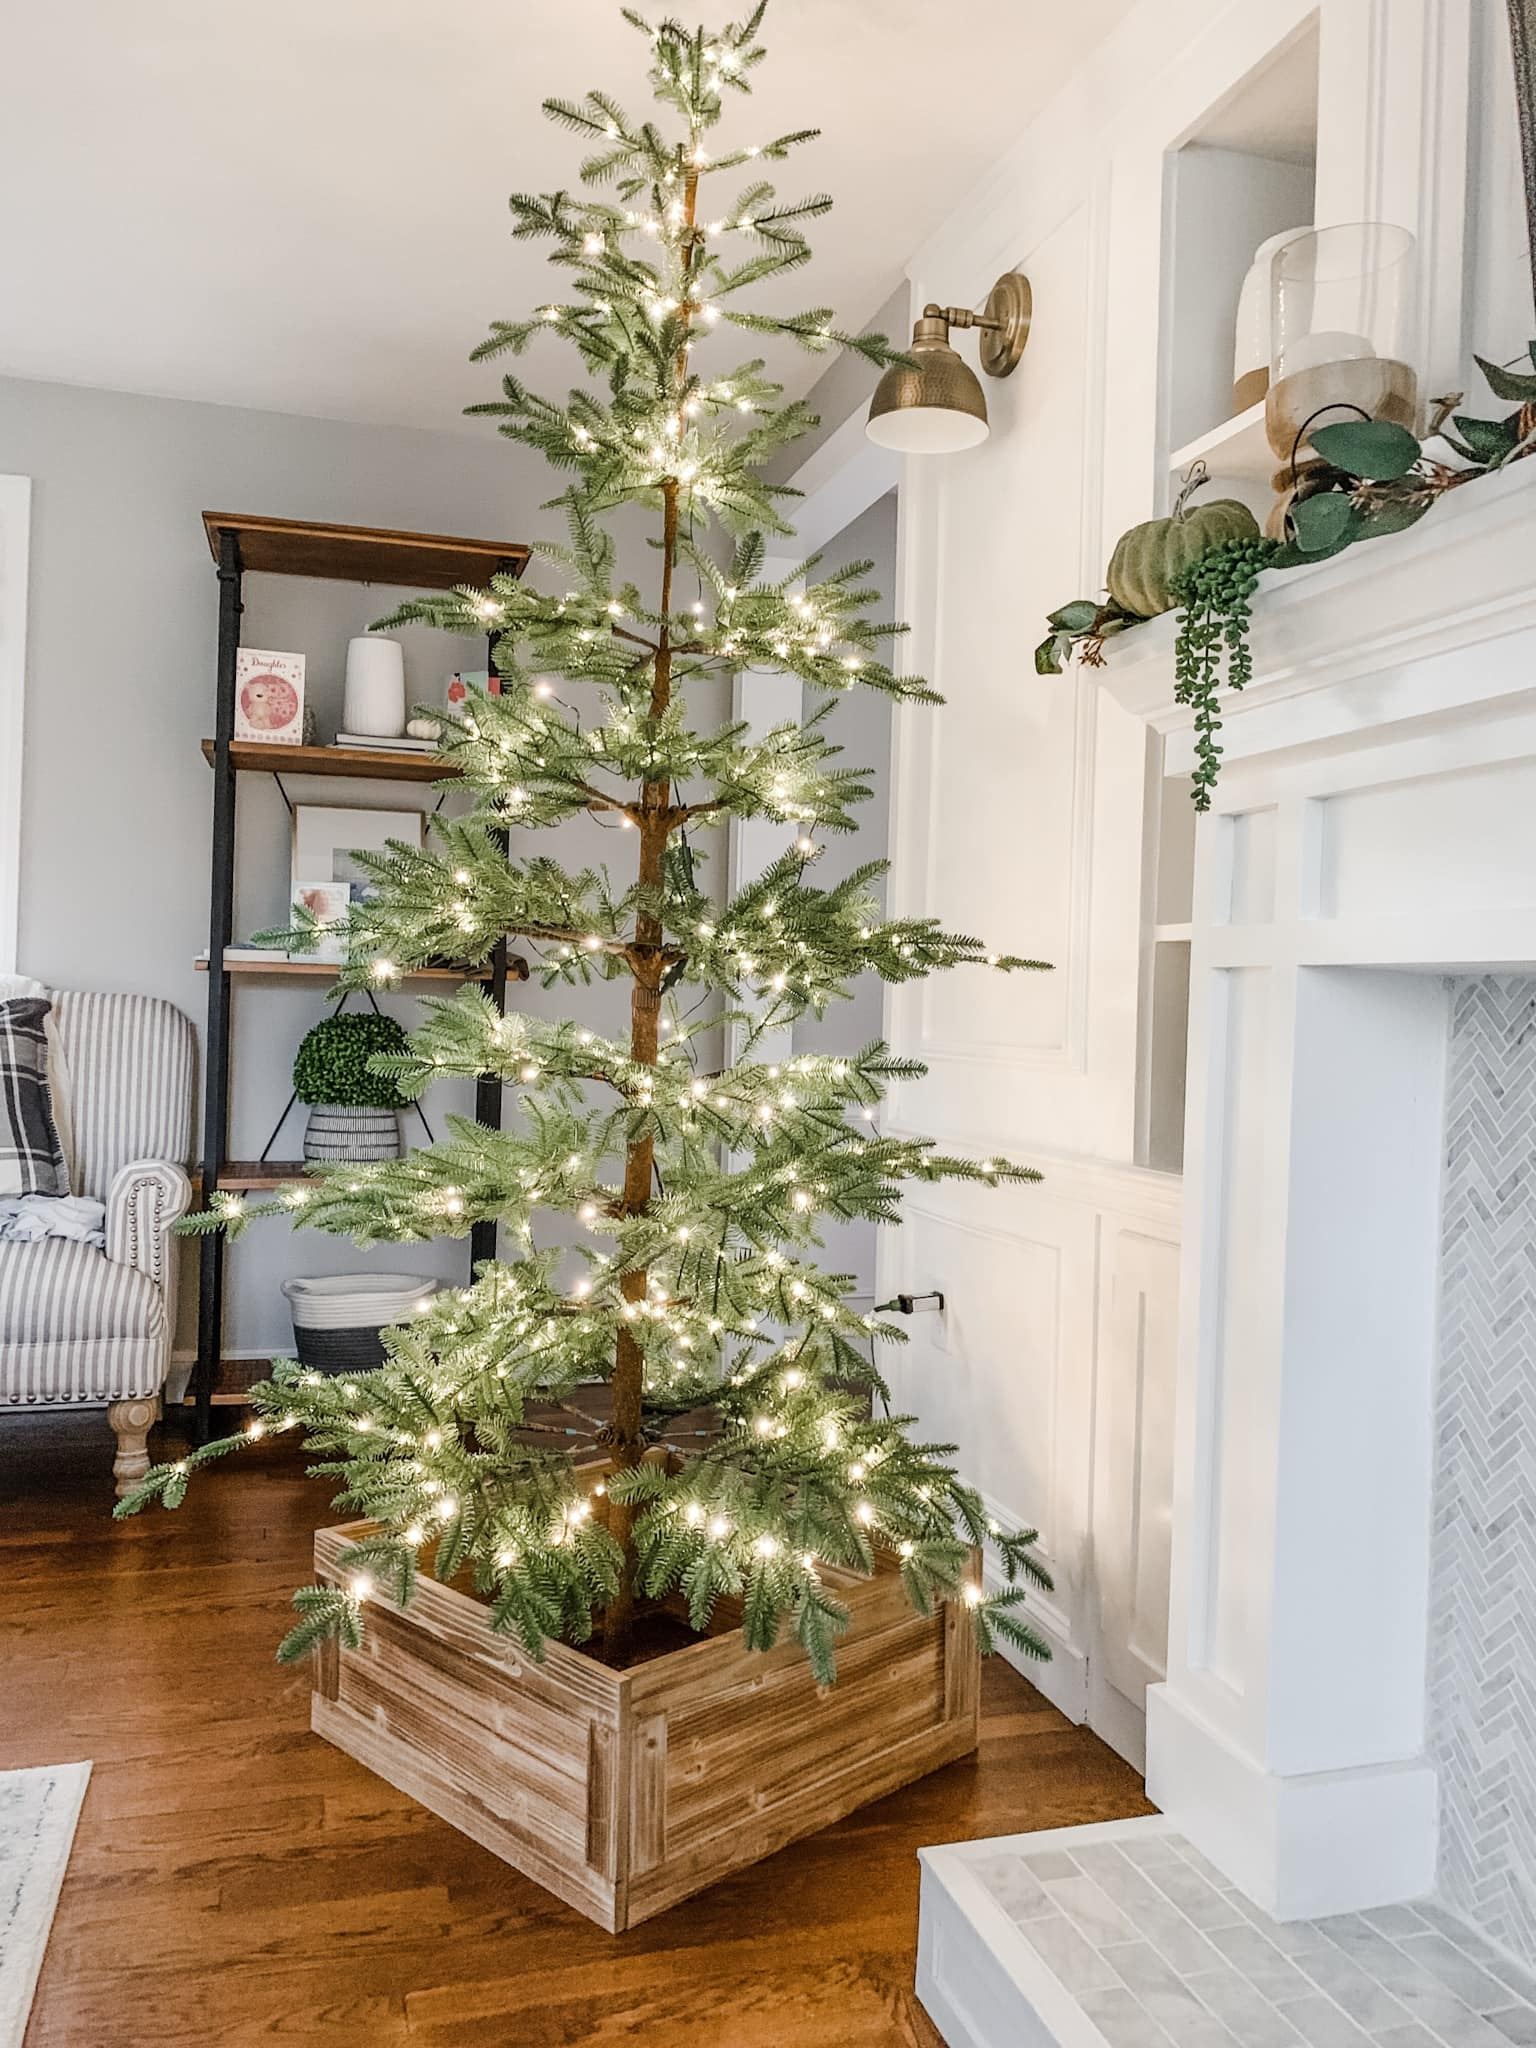 Christmas trees don't have to be decorated to look good.